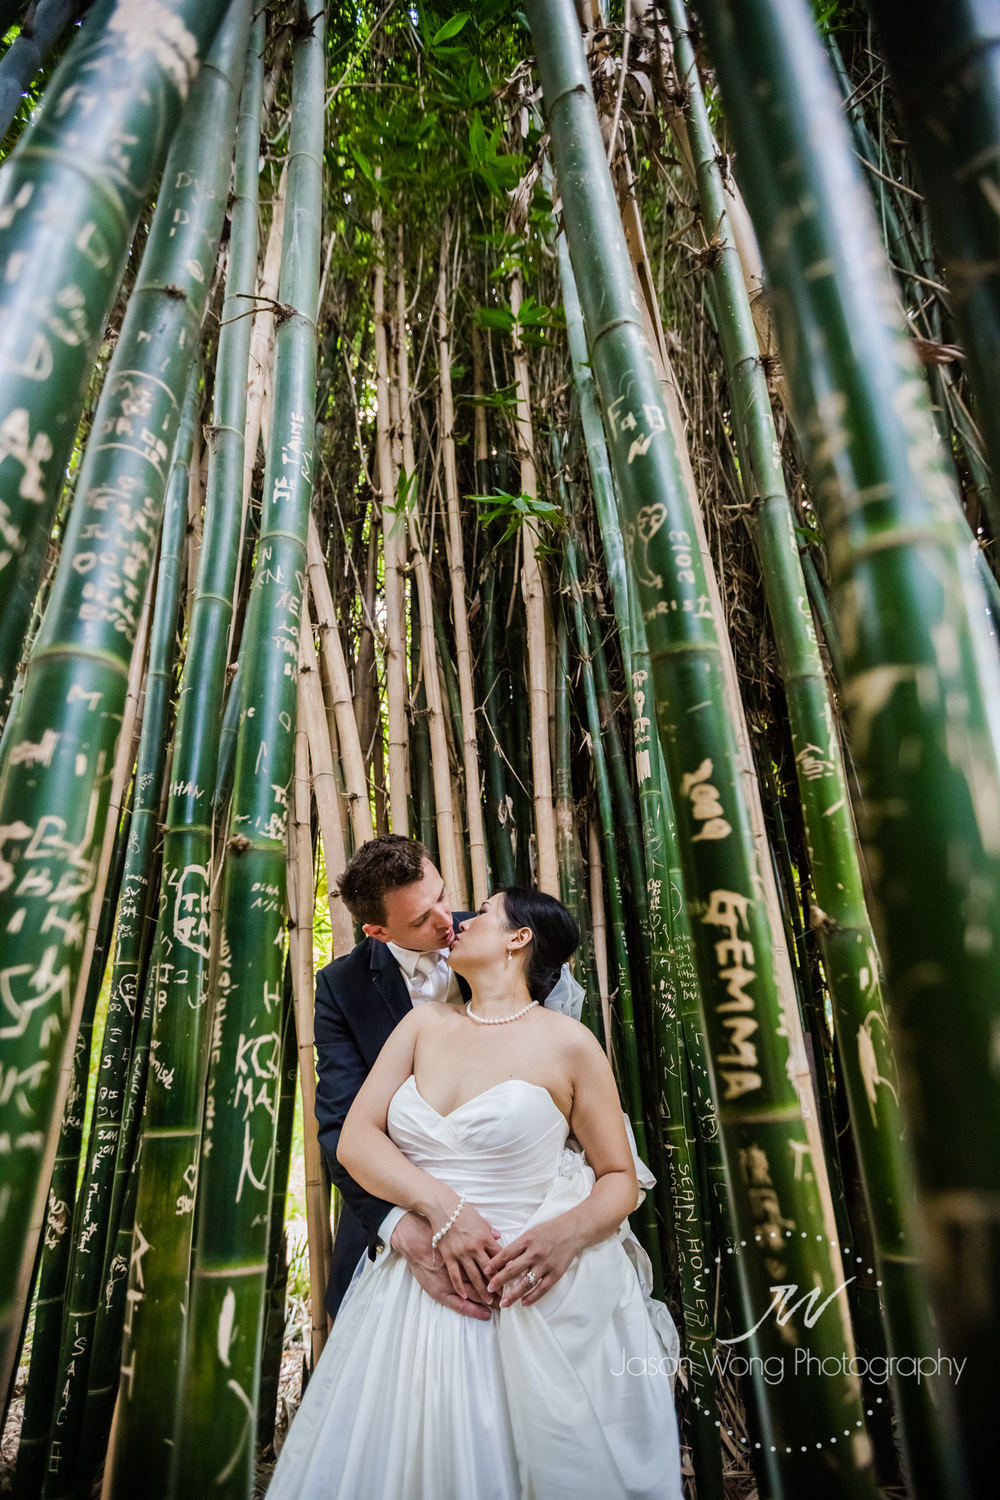 newlyweds-kissing-in-bamboo-jungle.jpg